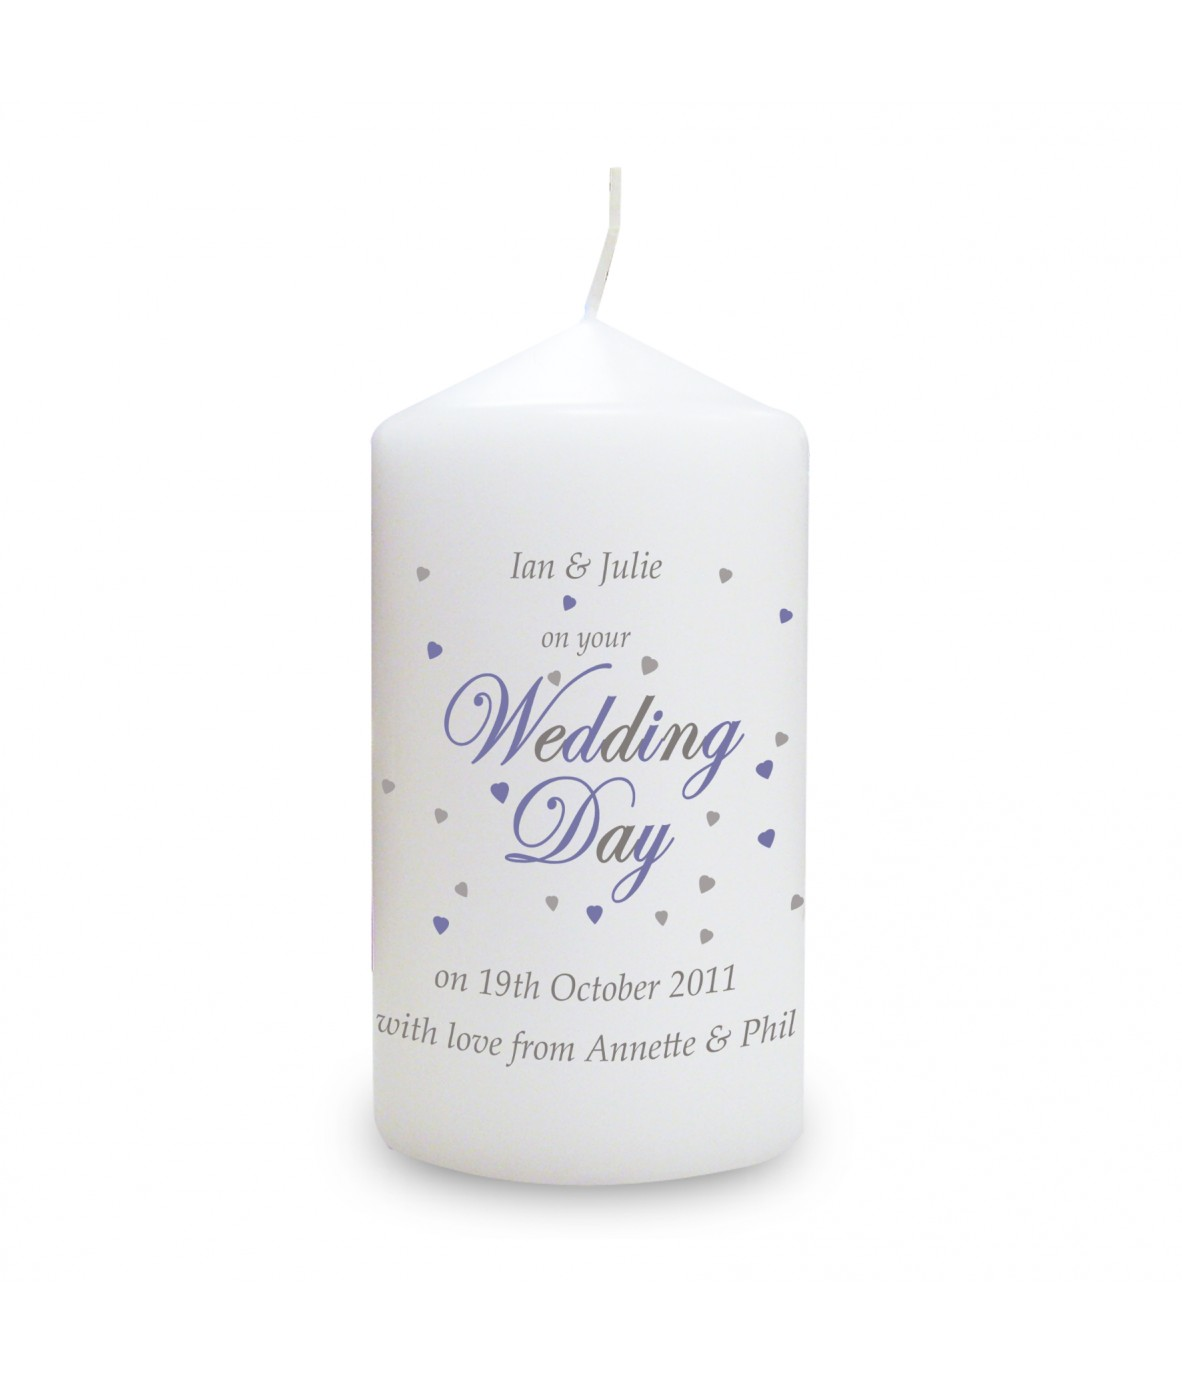 wedding day personalised candle personalised candles